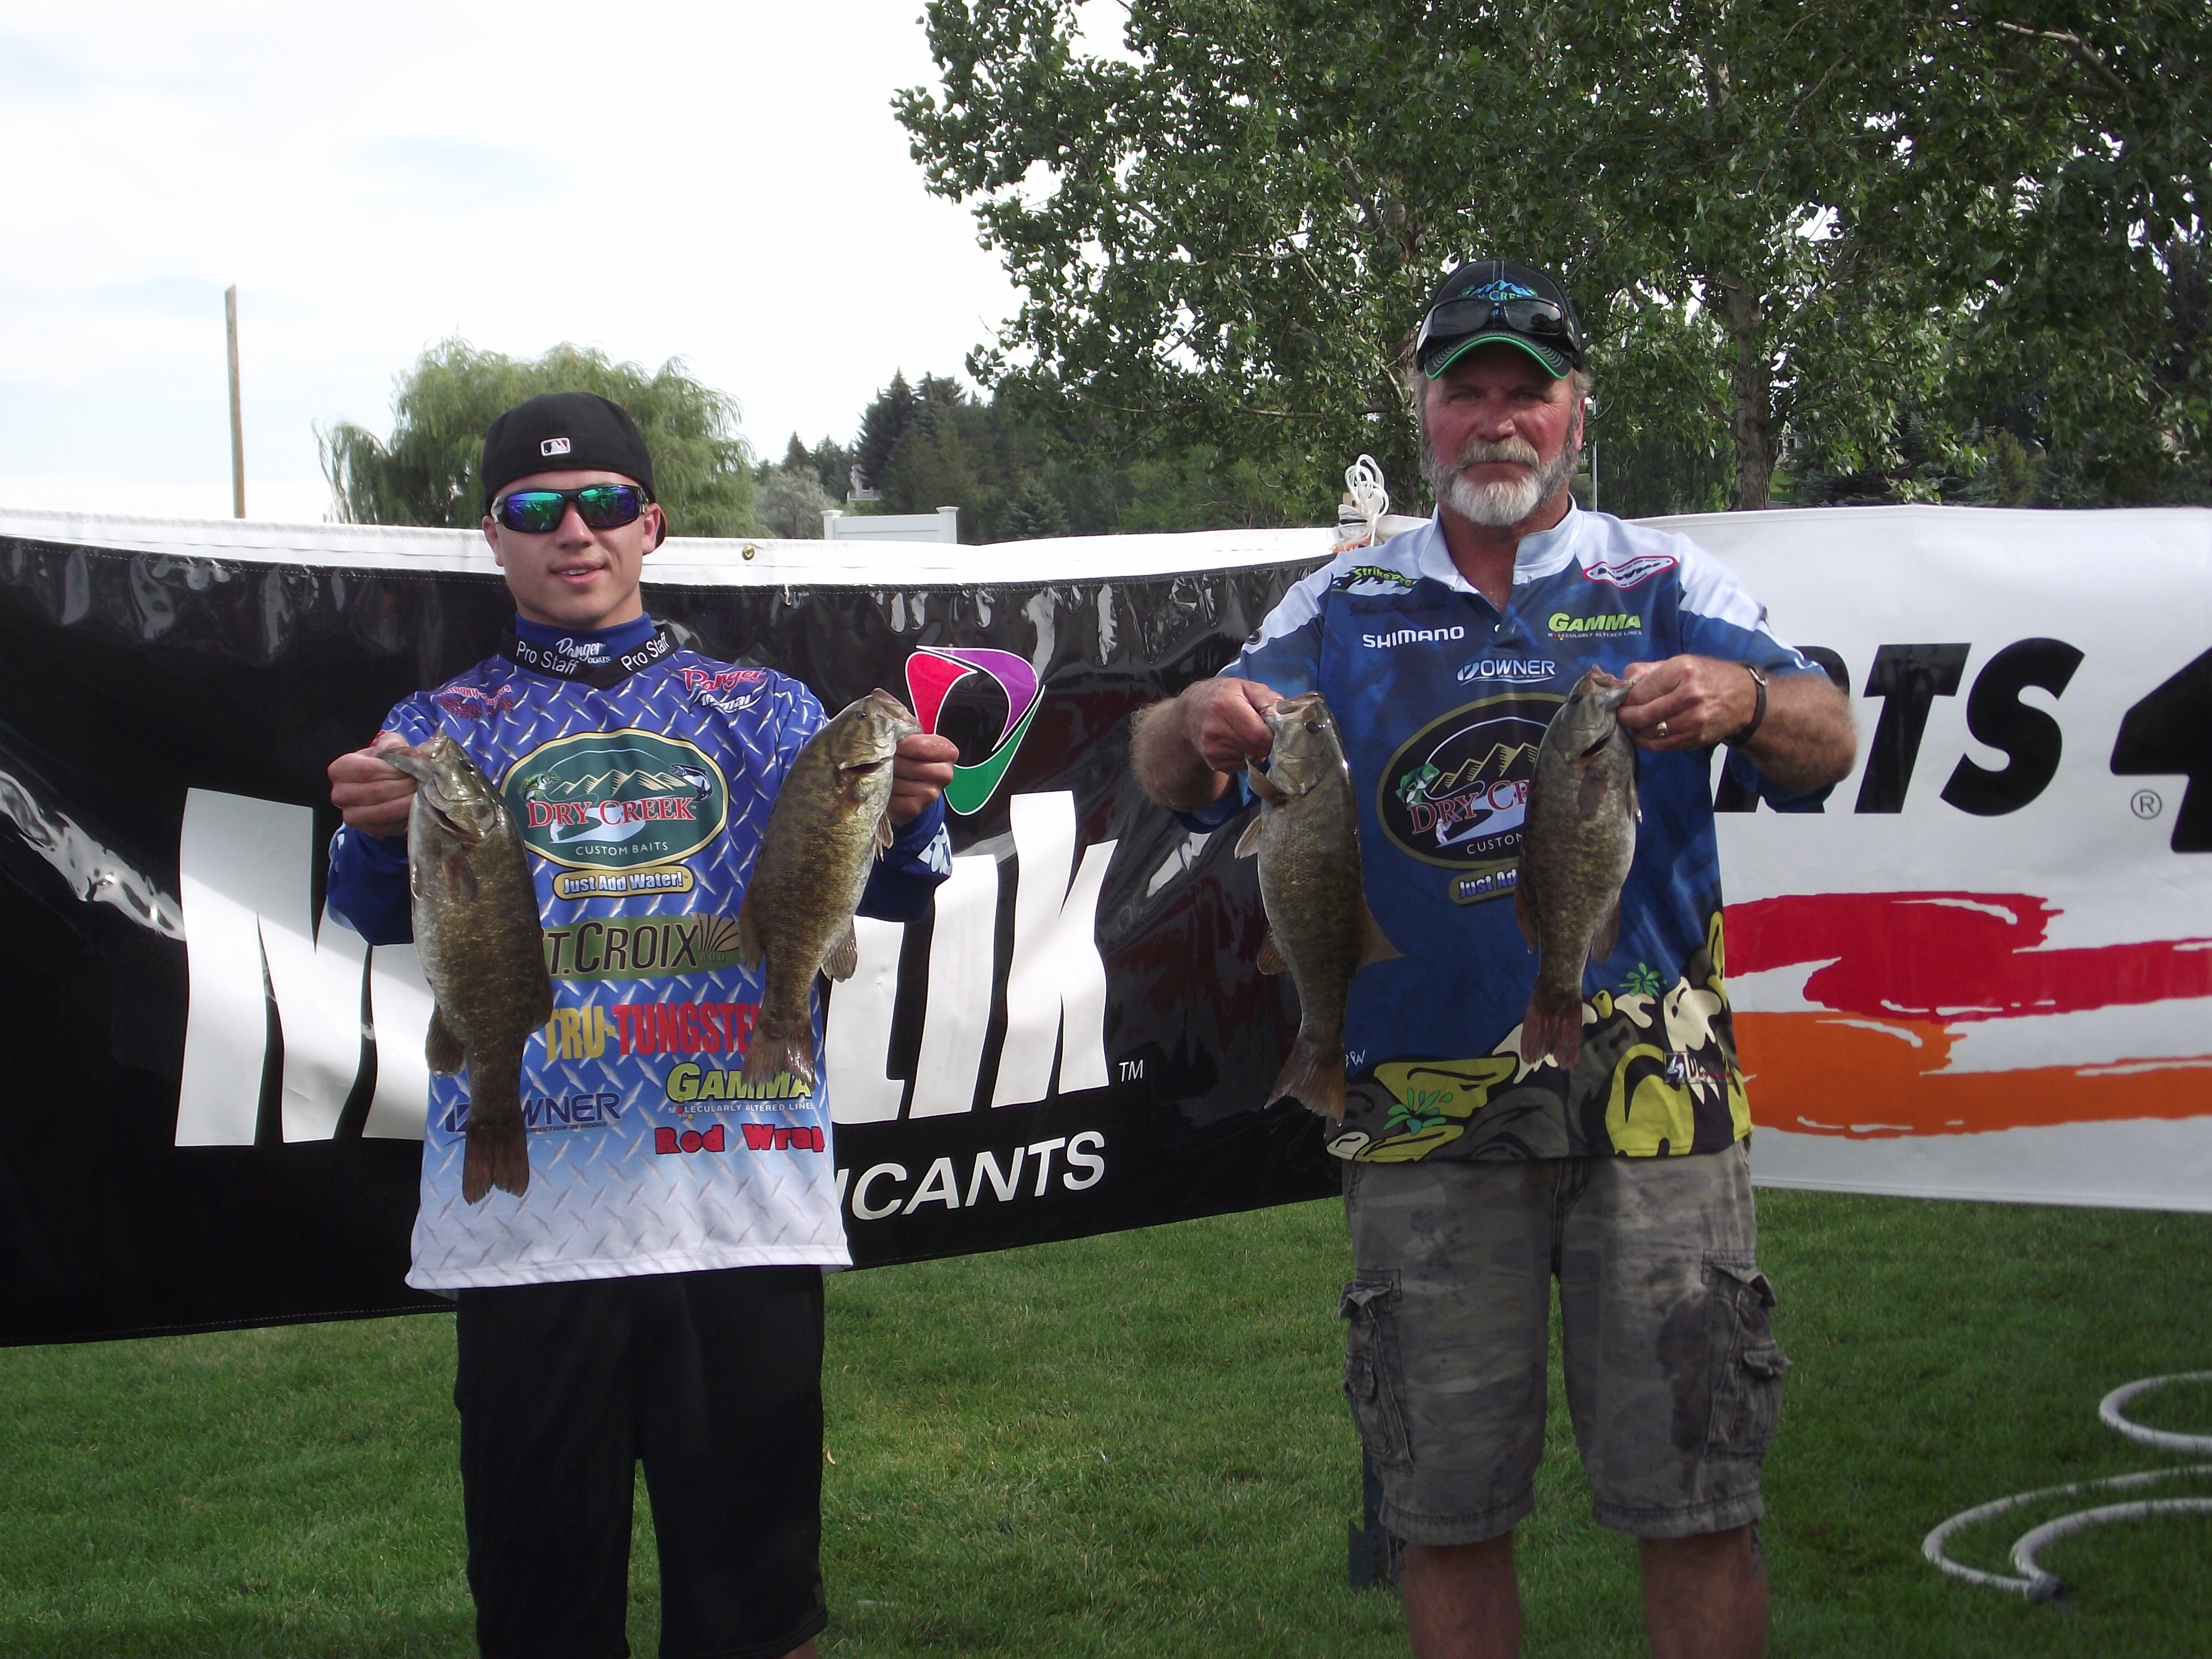 Dry creek outfitters 39 5th annual open bass fishing for Open bass fishing tournaments